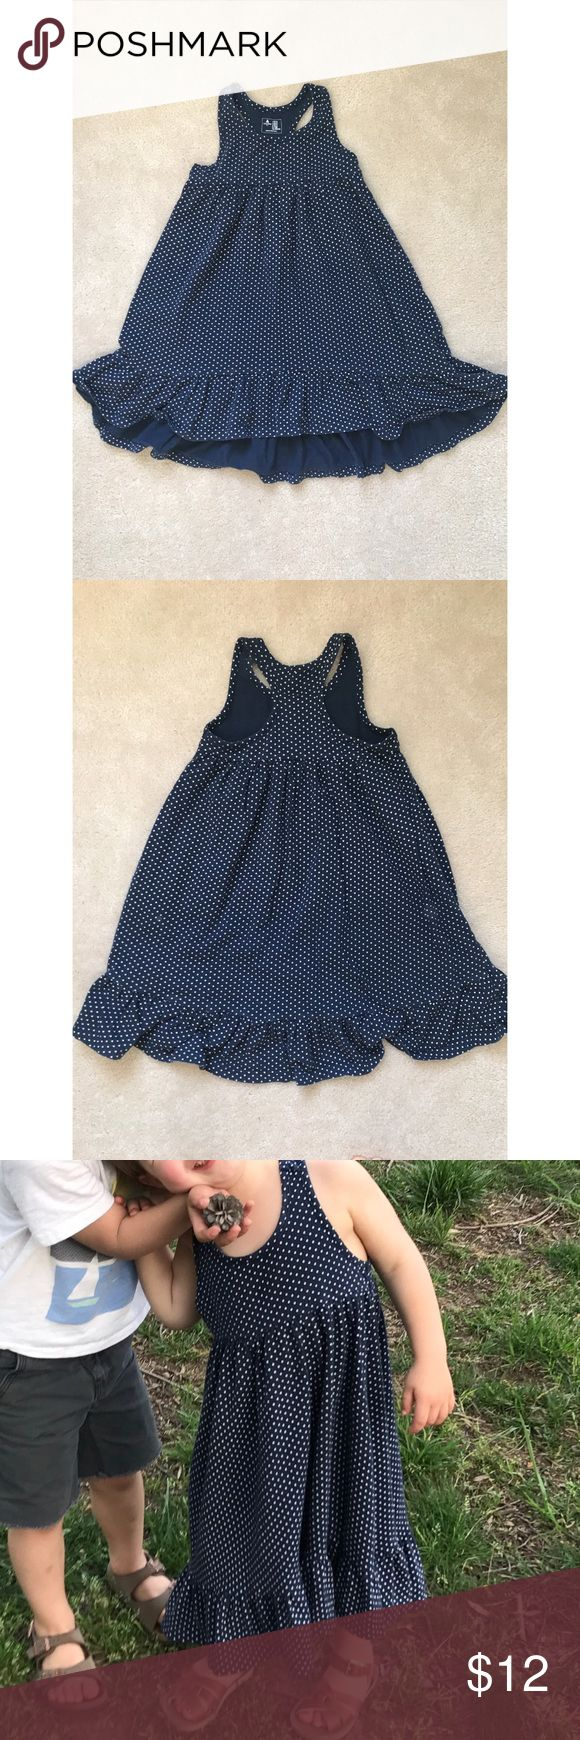 Navy Polka Dot Maxi Dress Super cute maxi dress from Gap Factory. It is soft, 100% cotton, navy wig white polka dots. It is a hi-low Dress, lightly higher in the front. Ruffle at the hem and a racer back style. In EUC. GAP Dresses Casual